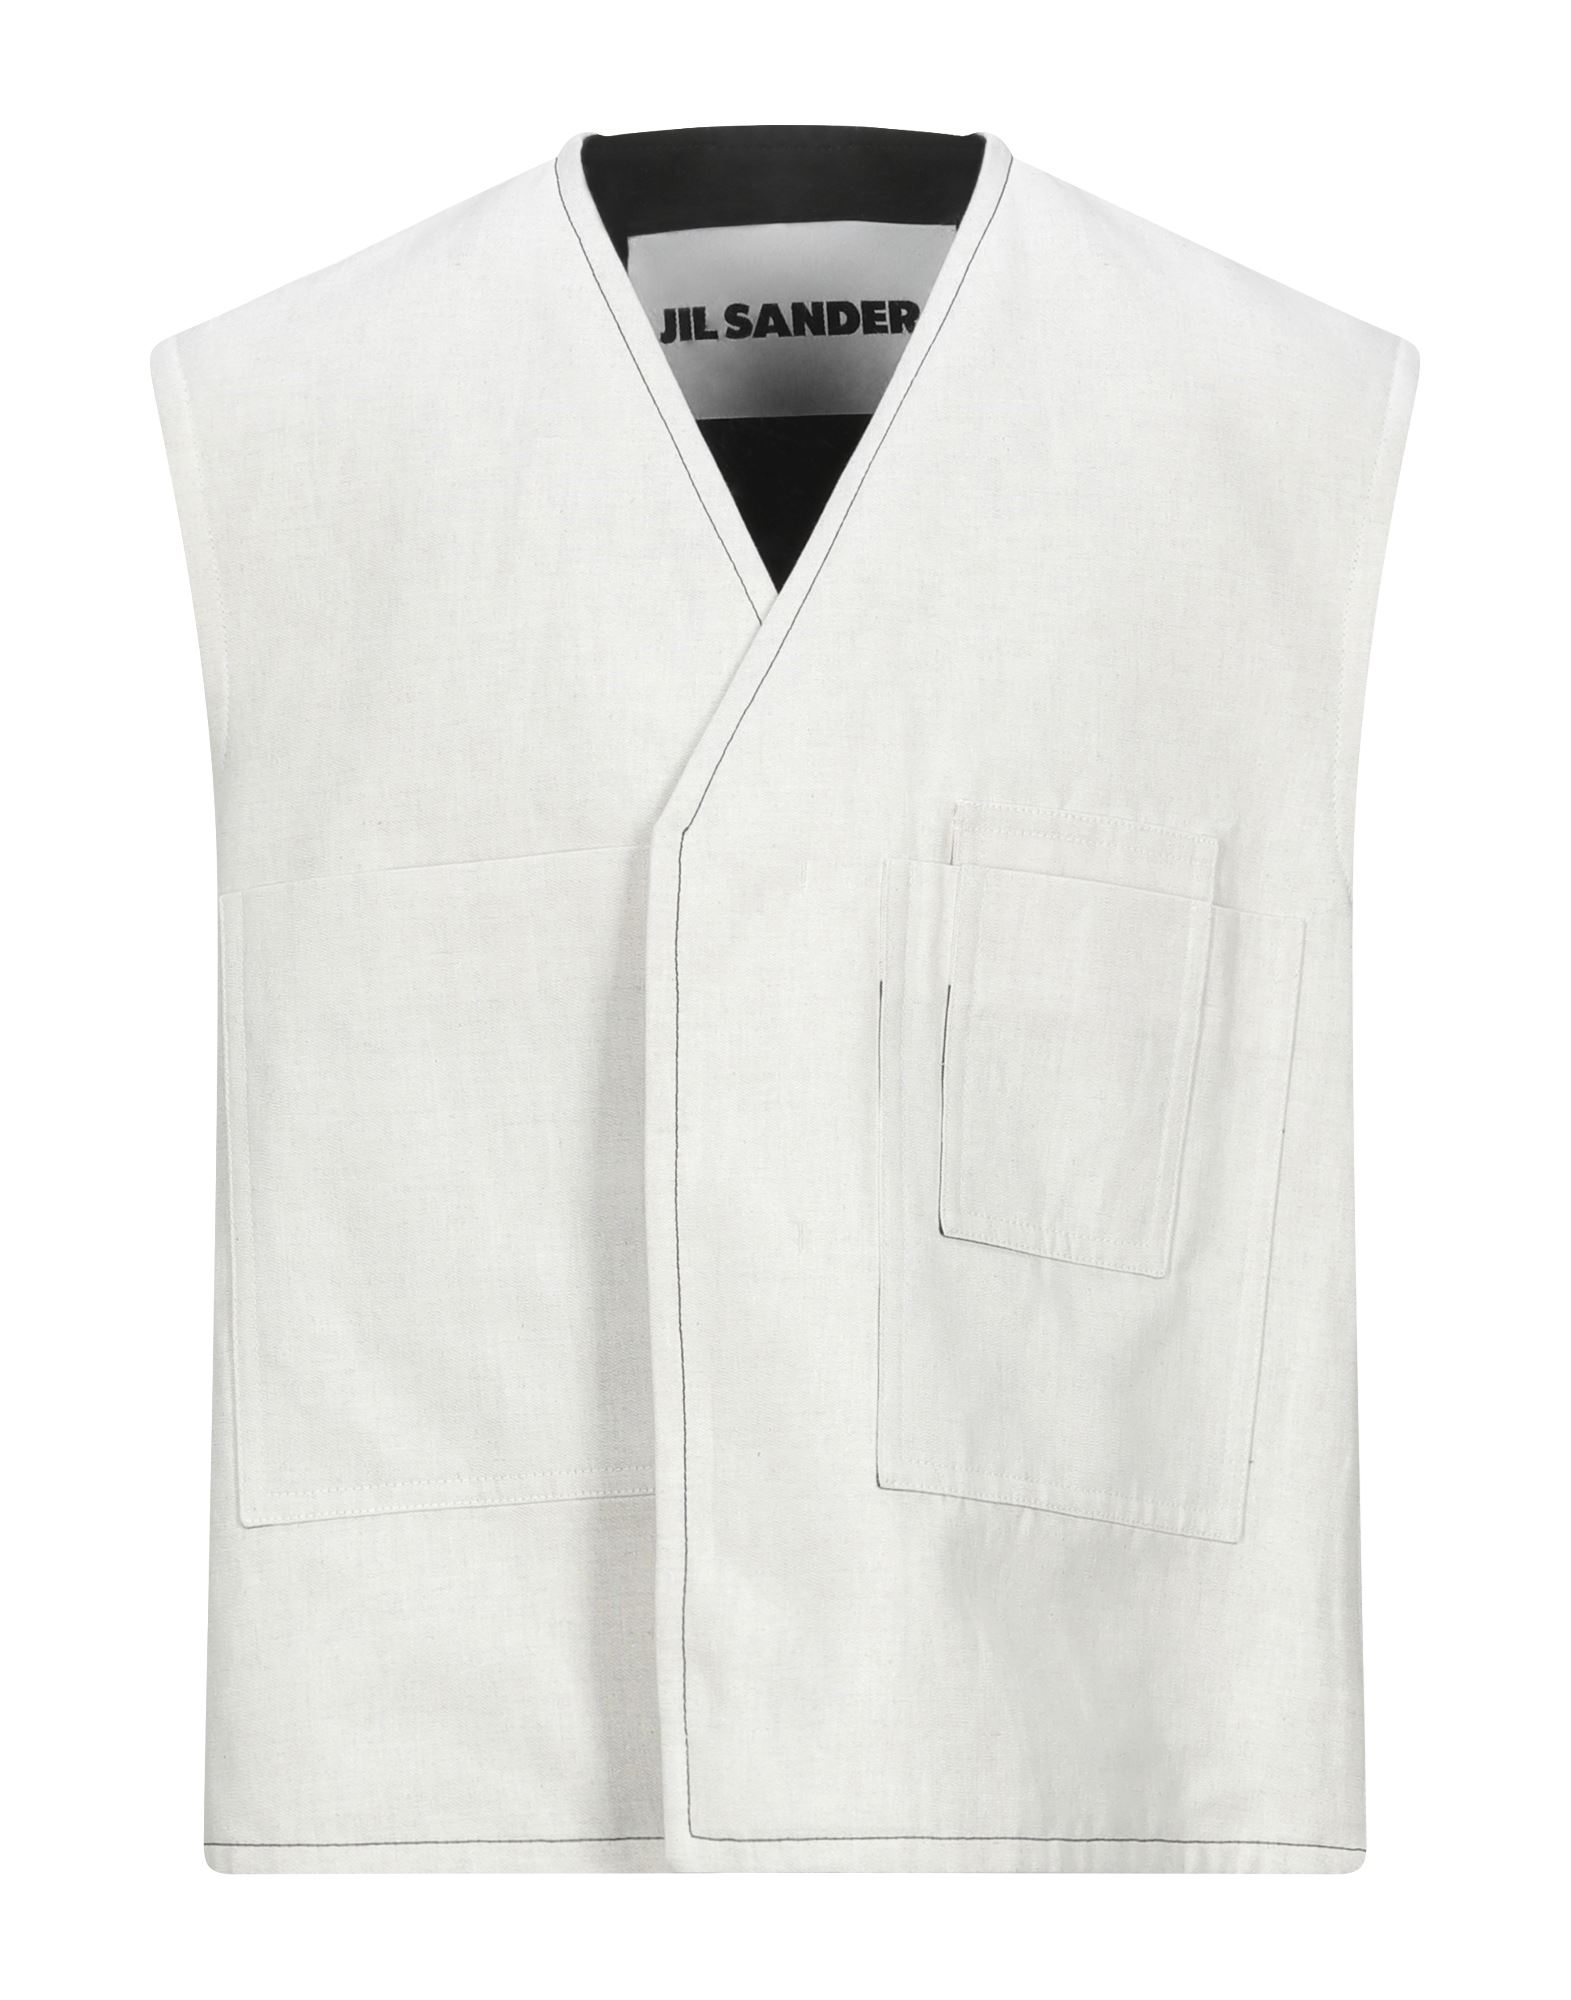 JIL SANDER Vests. contains non-textile parts of animal origin, plain weave, no appliqués, solid color, v-neck, sleeveless, single-breasted, multipockets, button closing, fully lined. 65% Cotton, 35% Linen